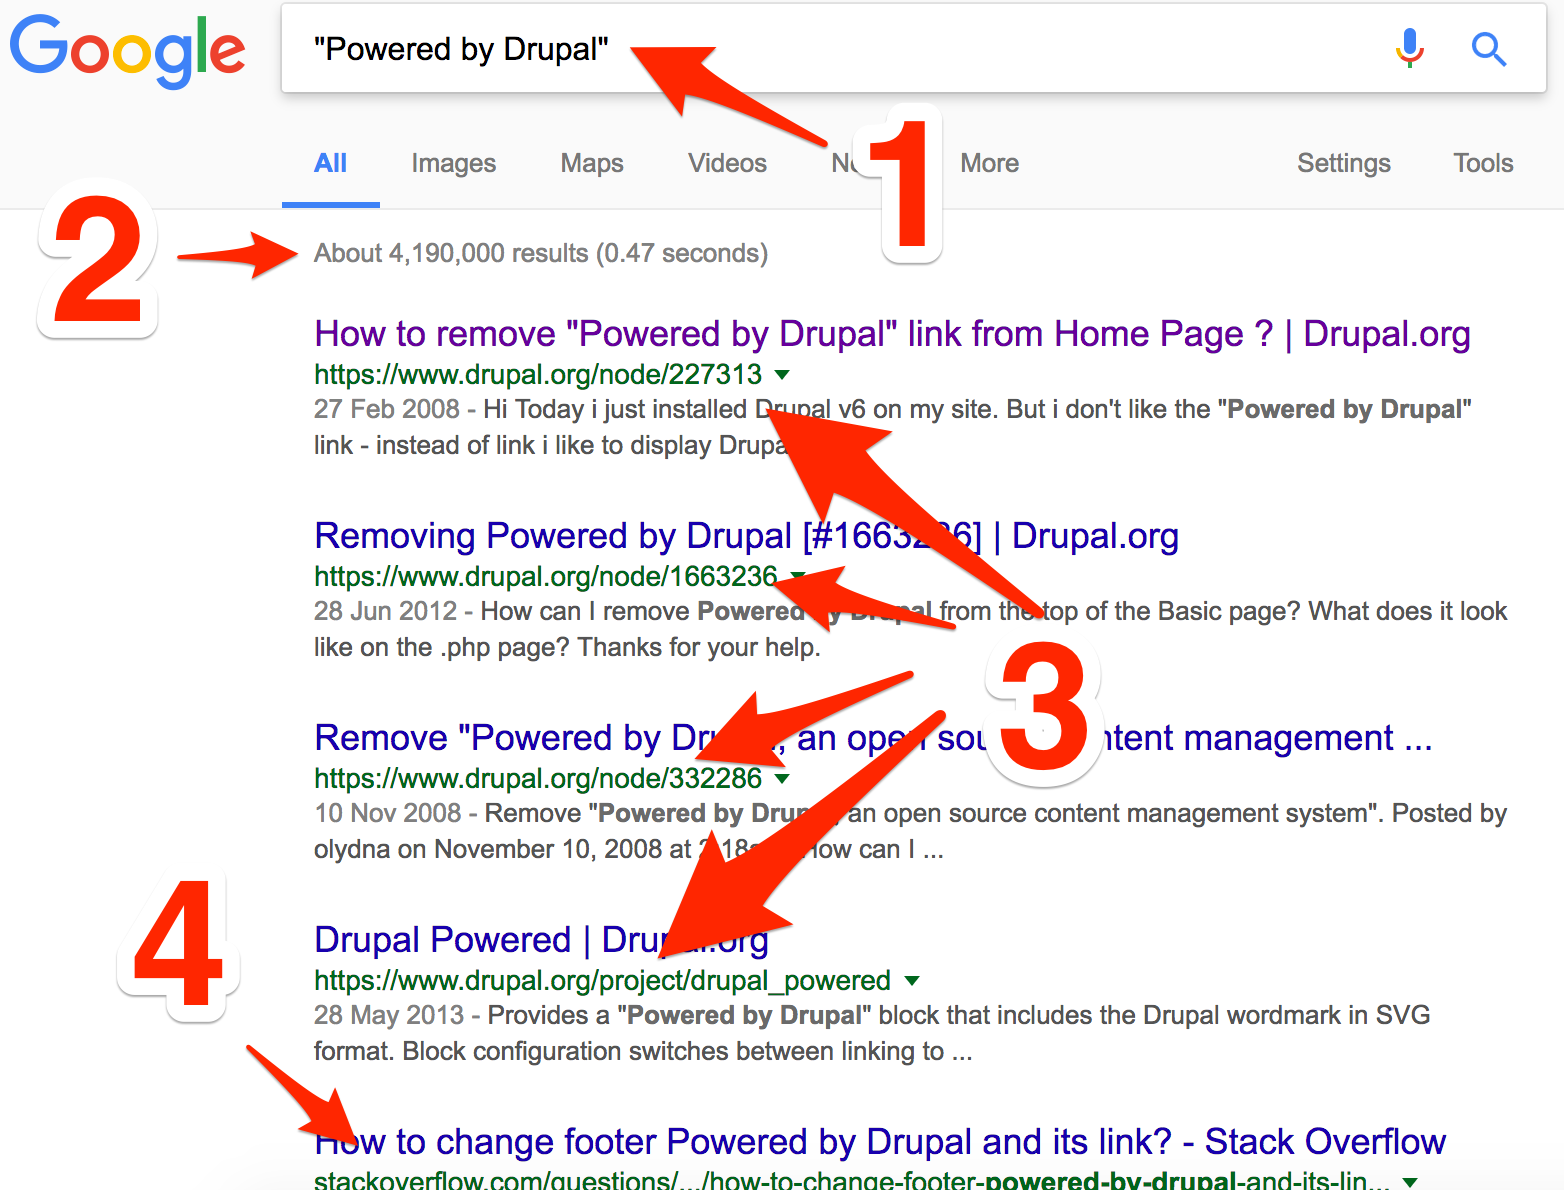 Powered By Drupal Footprint Google search